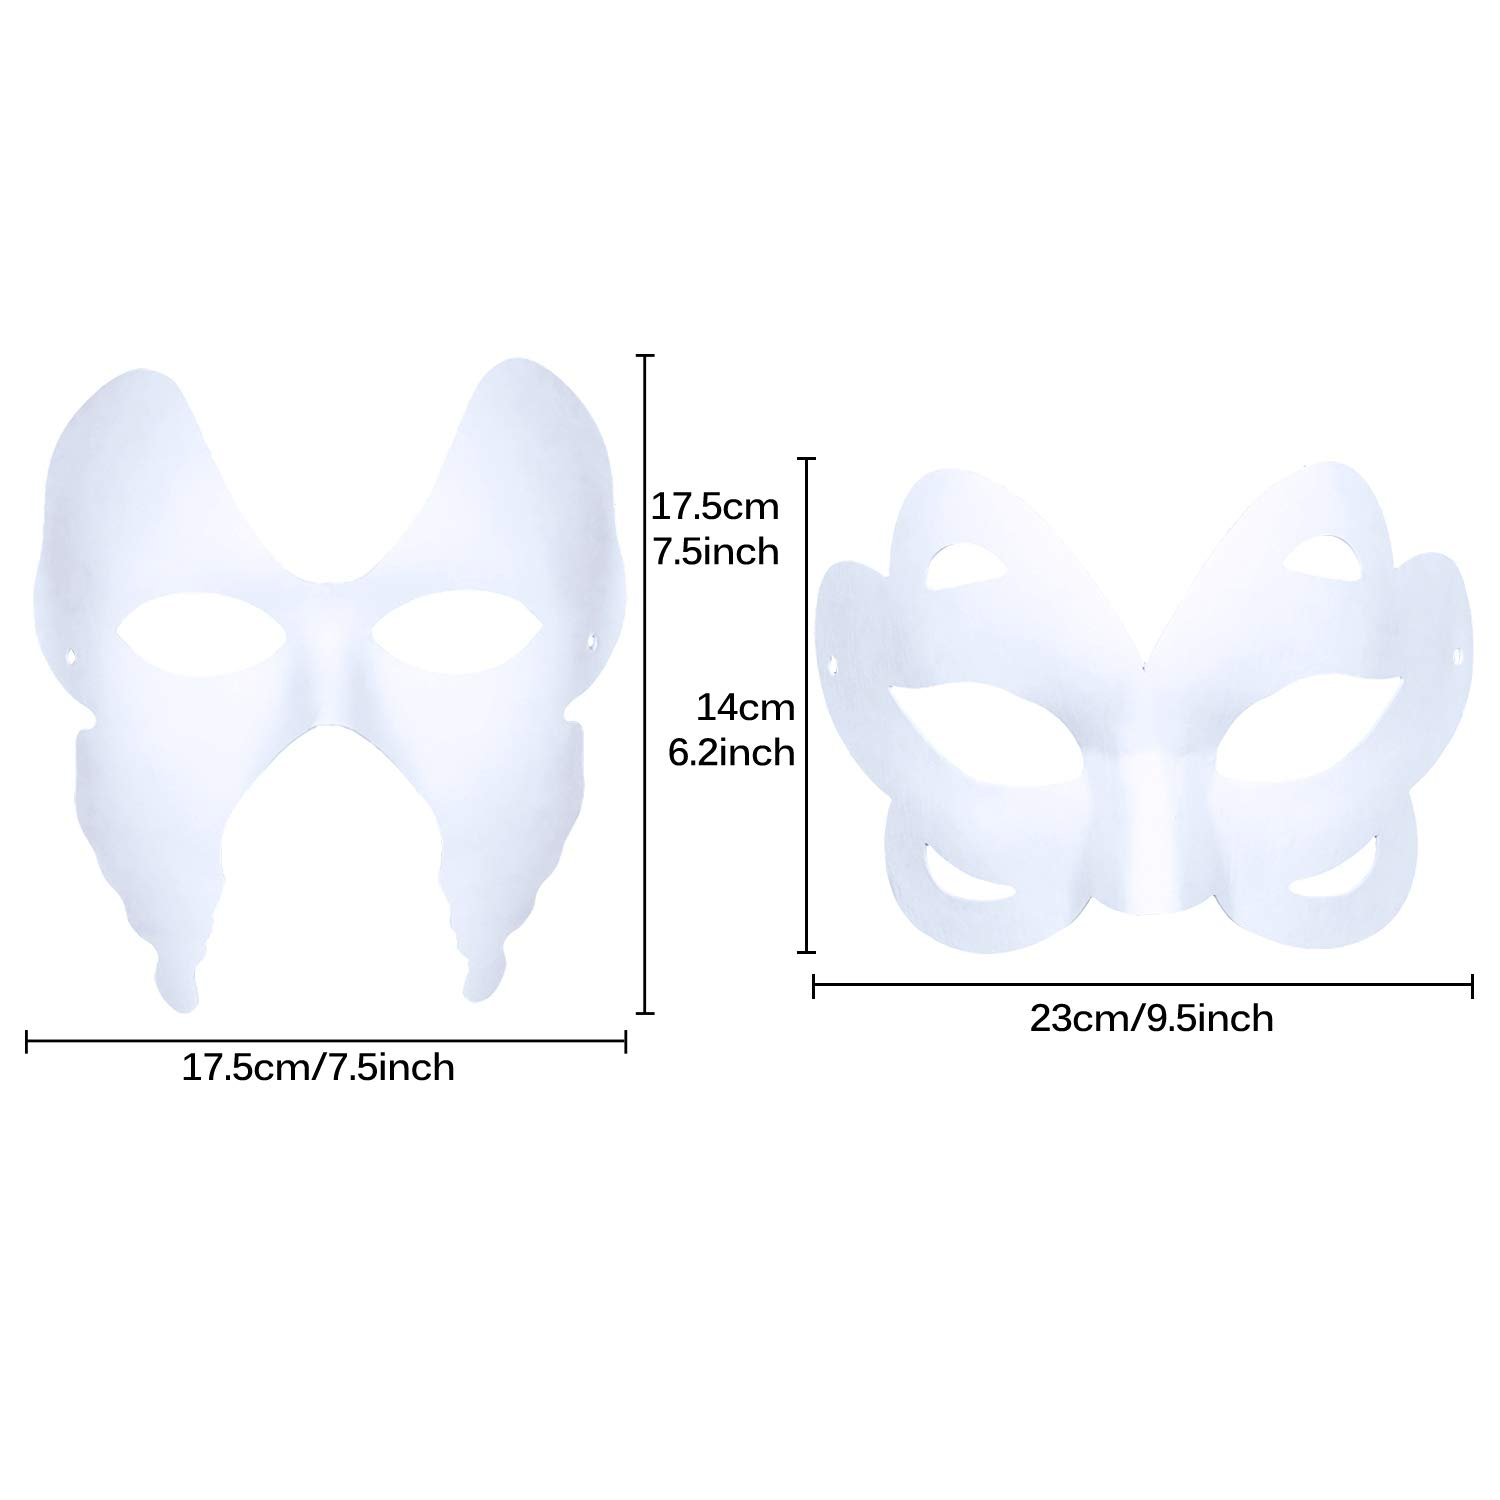 ZOYLINK White Mask, 12pcs Halloween Half Face Mask White Paper Mask DIY Mask Dance Cosplay Party Masquerade White Face Mask Halloween Masked for masquerade mardi gras fashion shows costume party